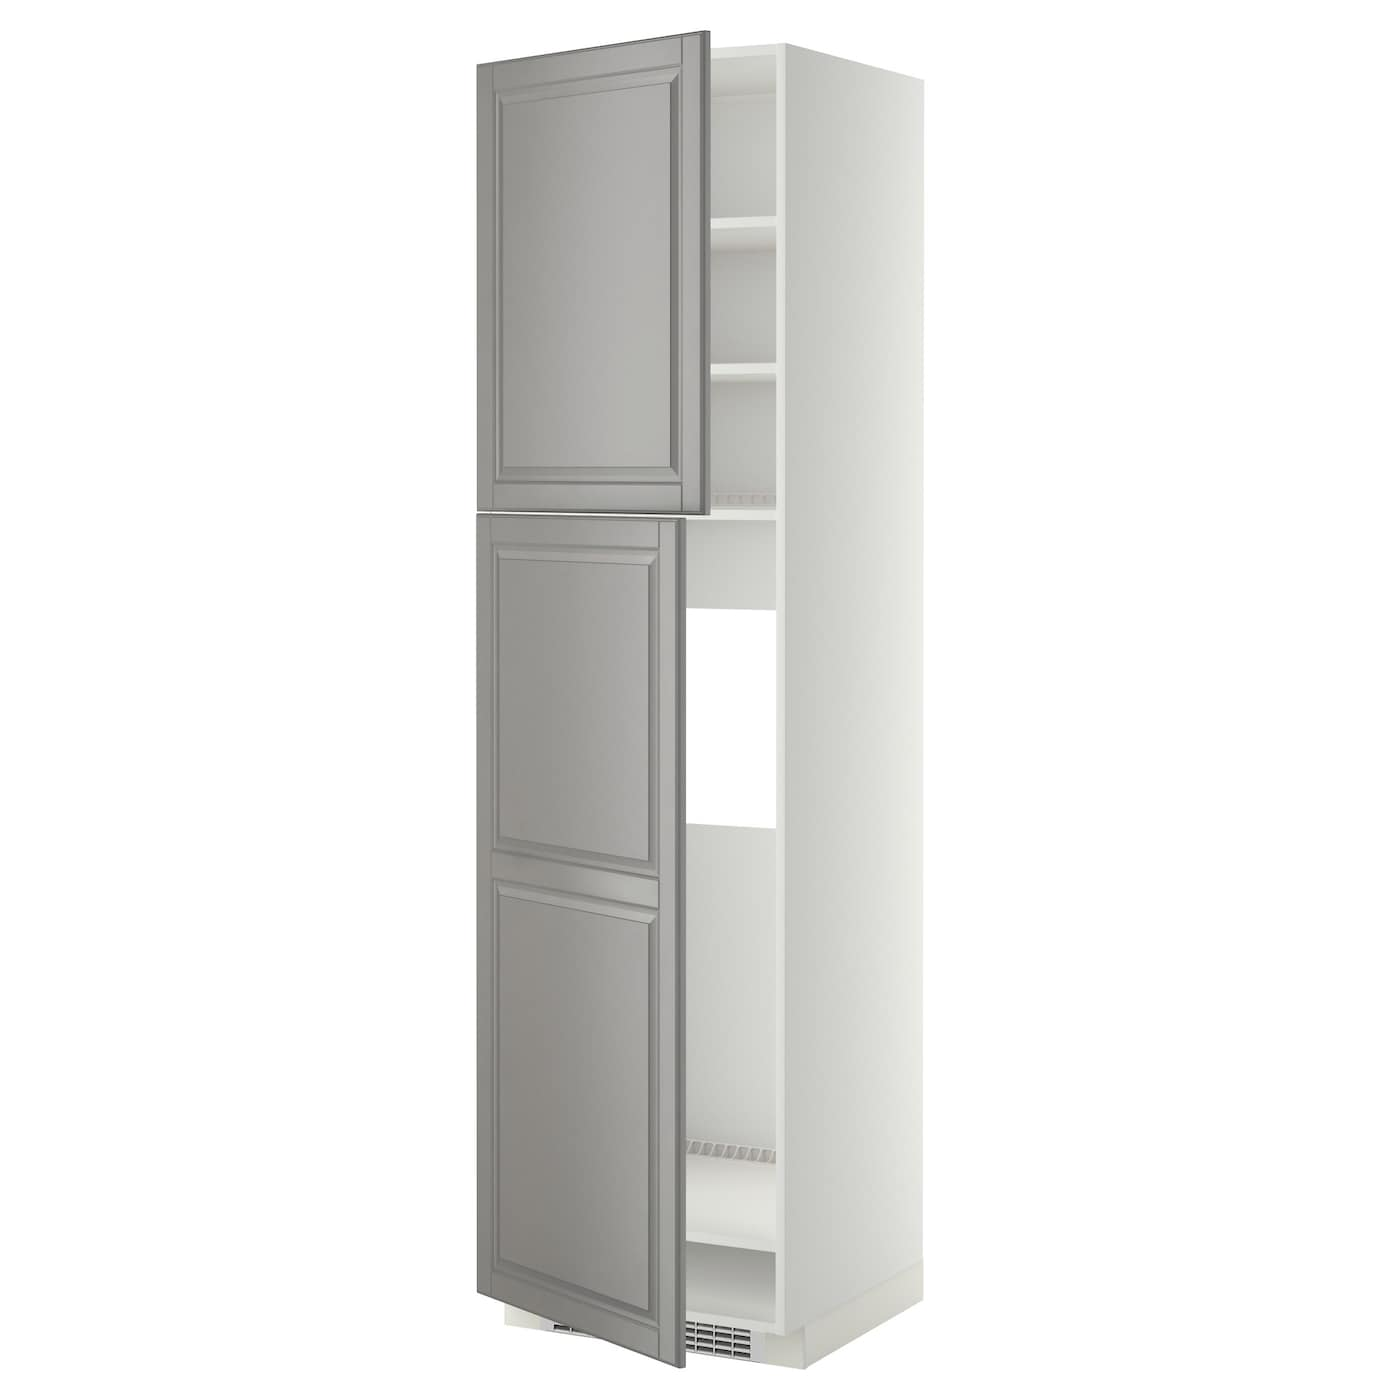 Metod high cabinet for fridge w 2 doors white bodbyn grey 60x60x220 cm ikea - Ikea kitchenette frigo ...